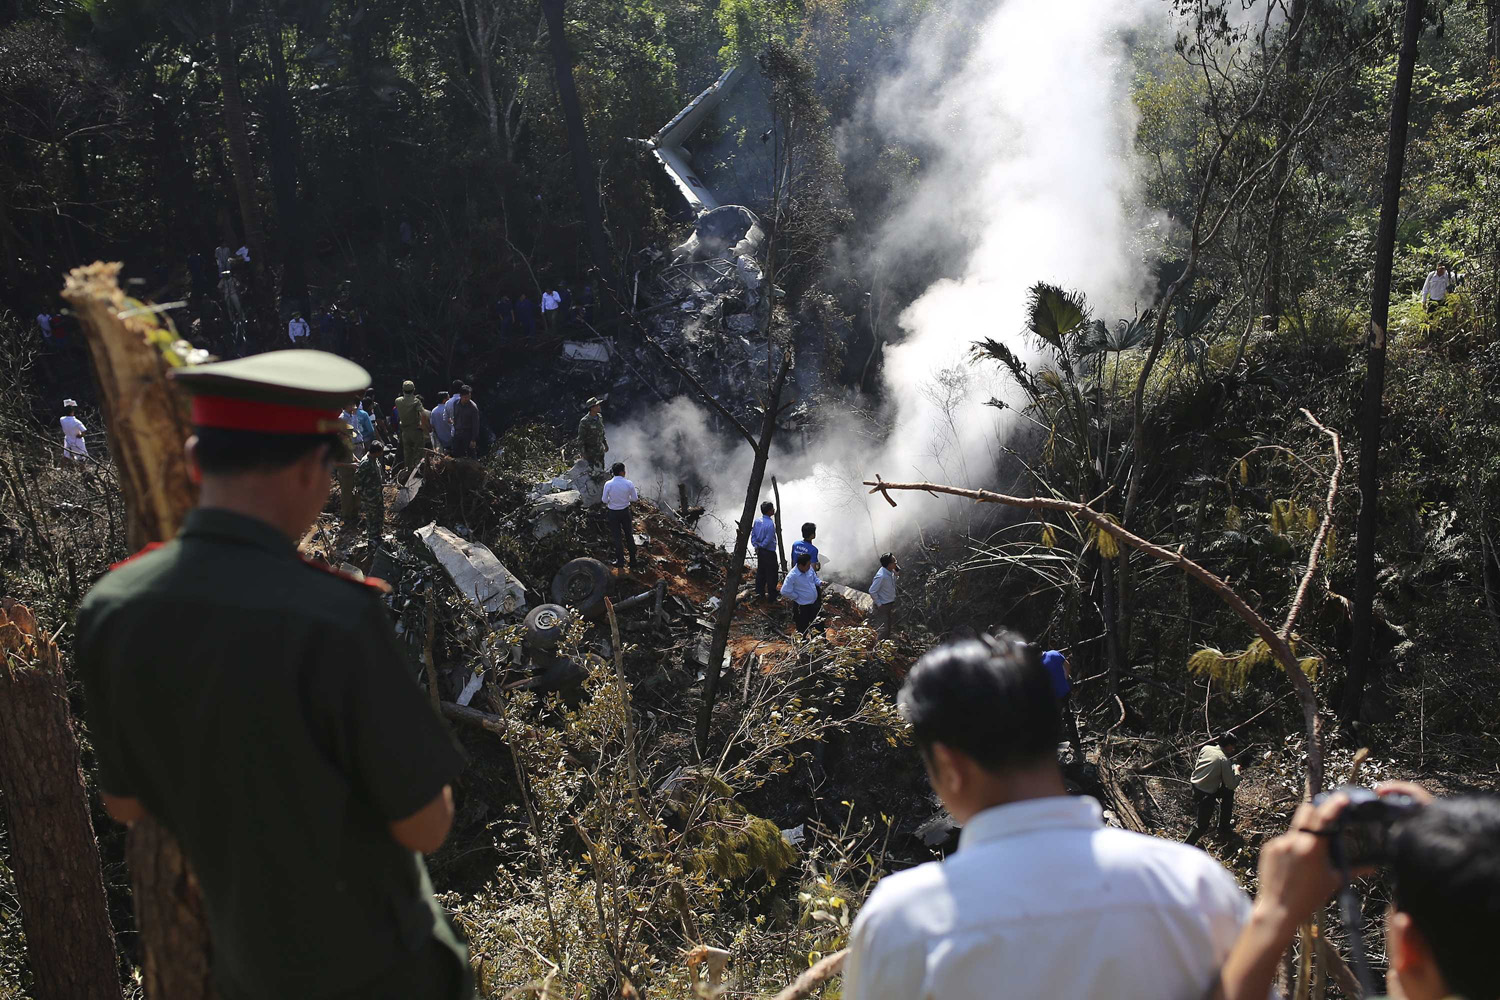 May 17, 2014. Rescue workers search an air force plane crash site near Nadee village, in Xiang Khouang province in the north of the country.